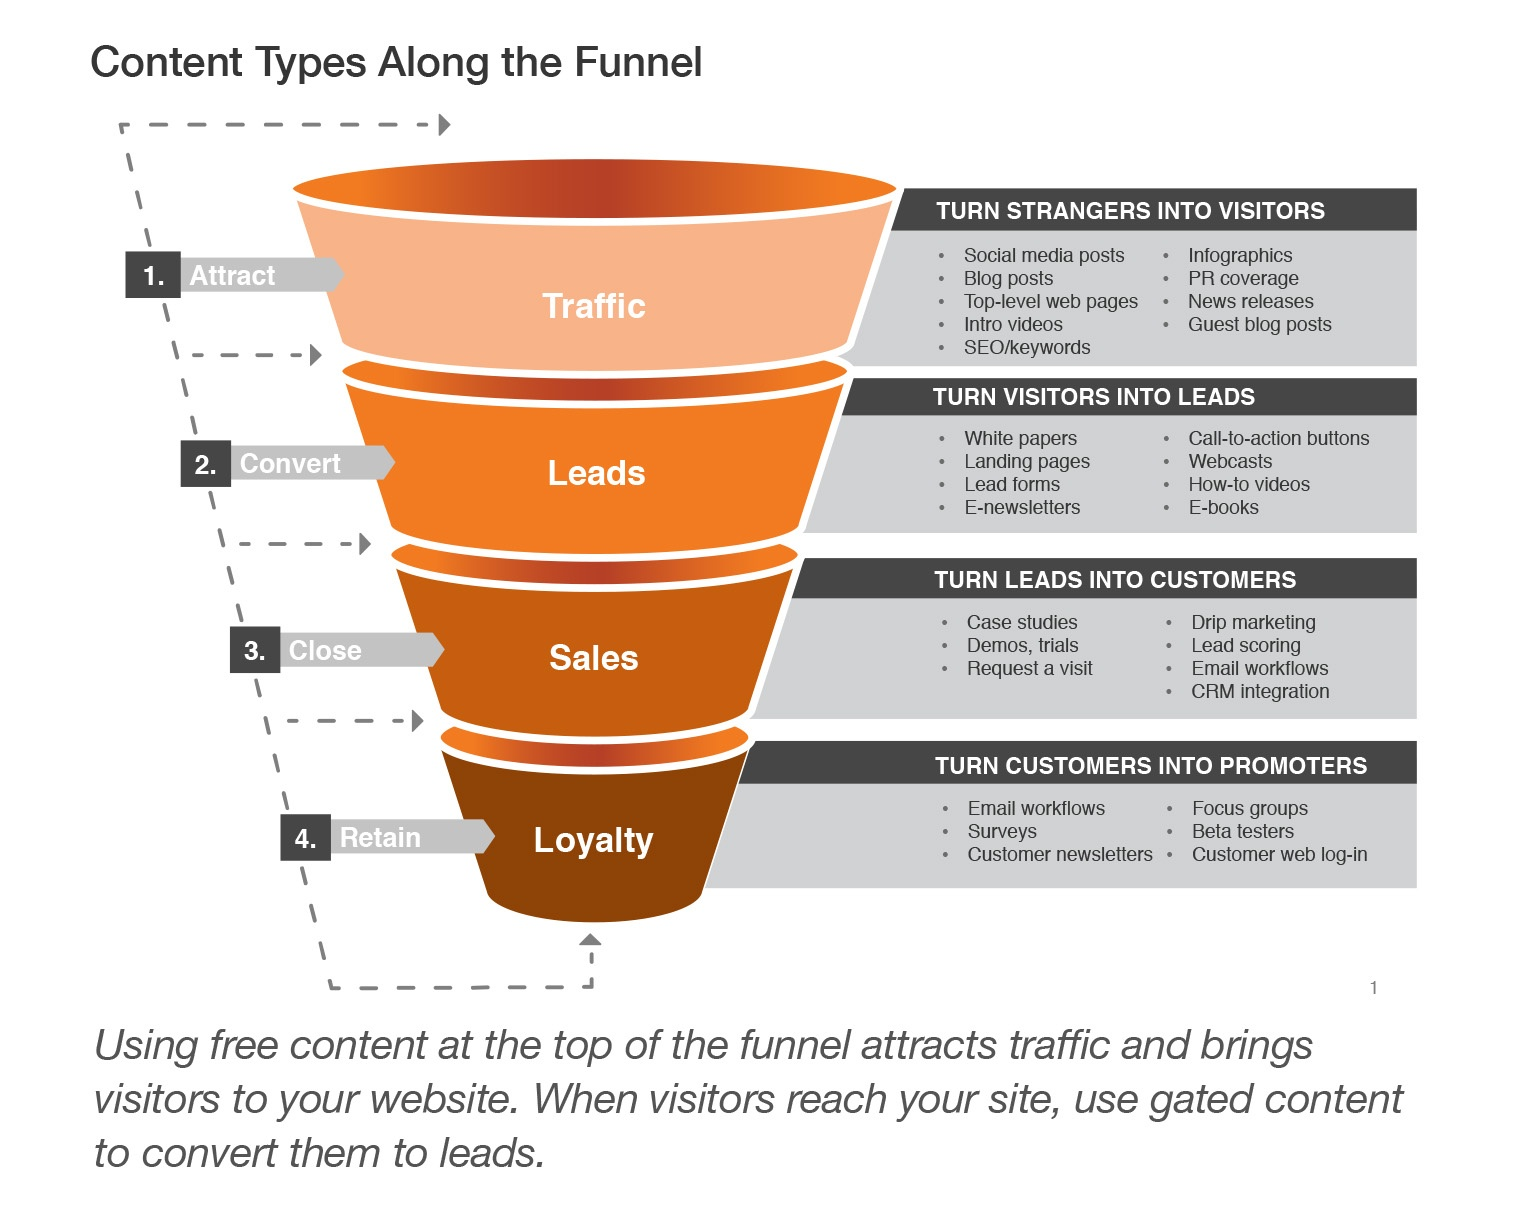 Content types along the funnel